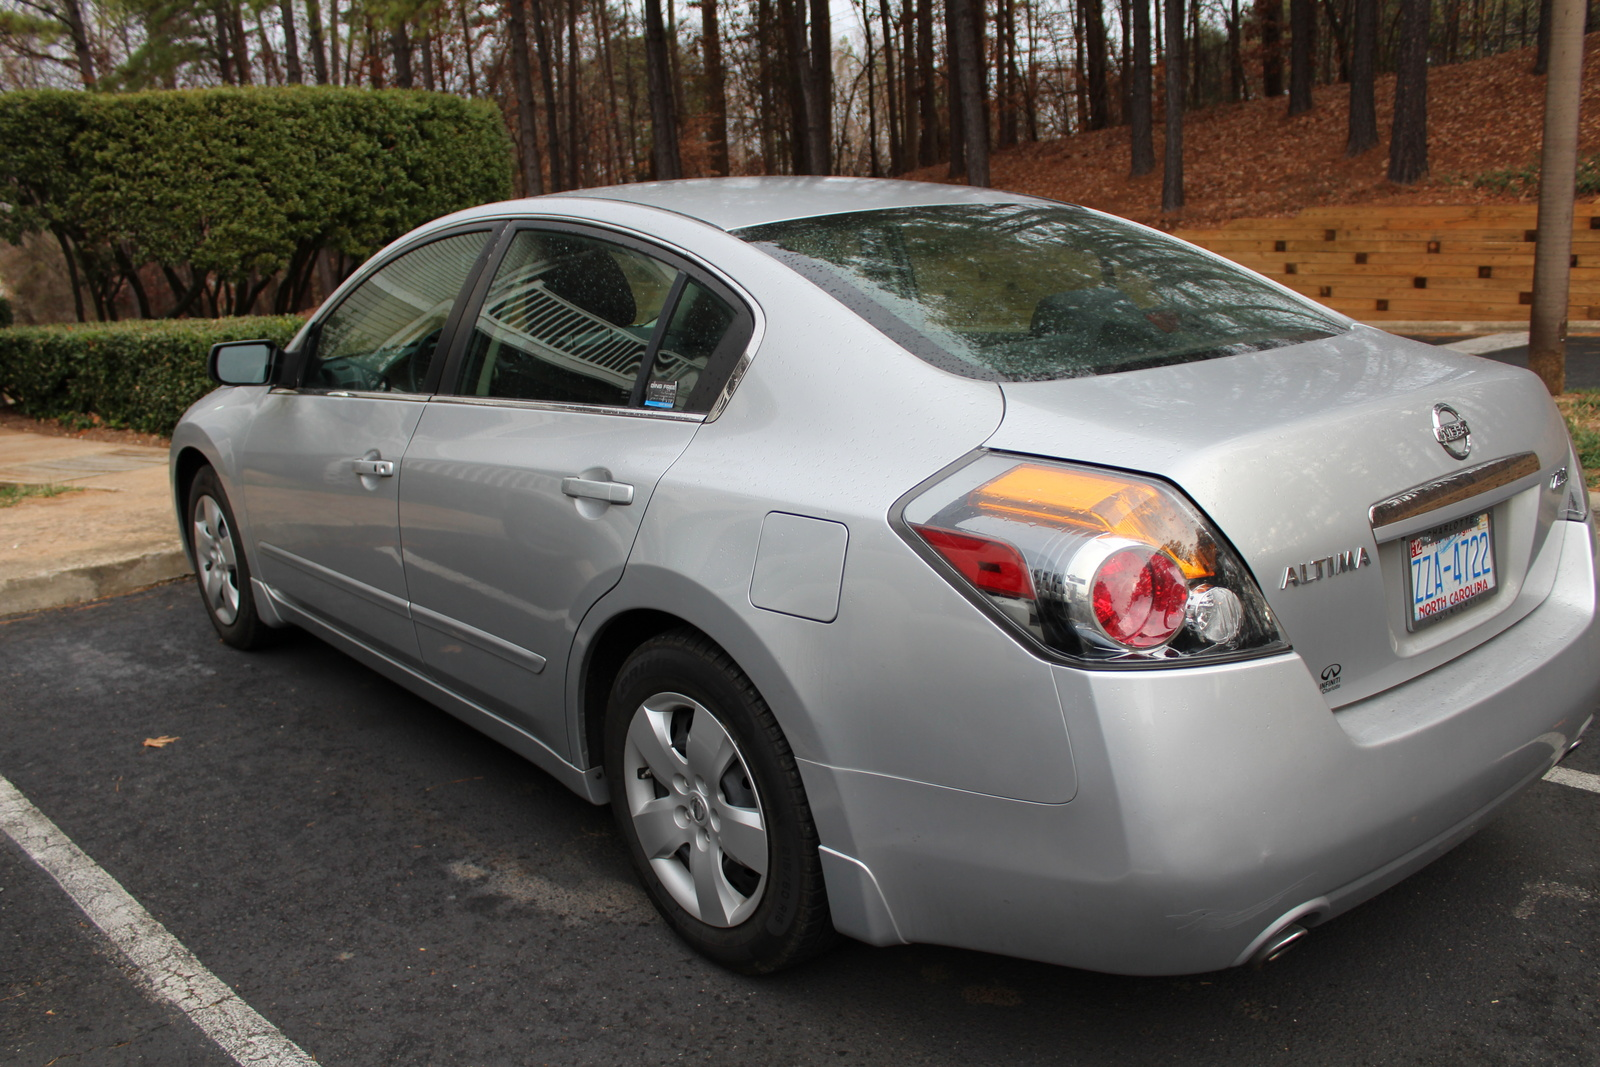 Nissan Altima Gas Mileage >> 2014 Nissan Altima Reviews Consumer Reports | Autos Post